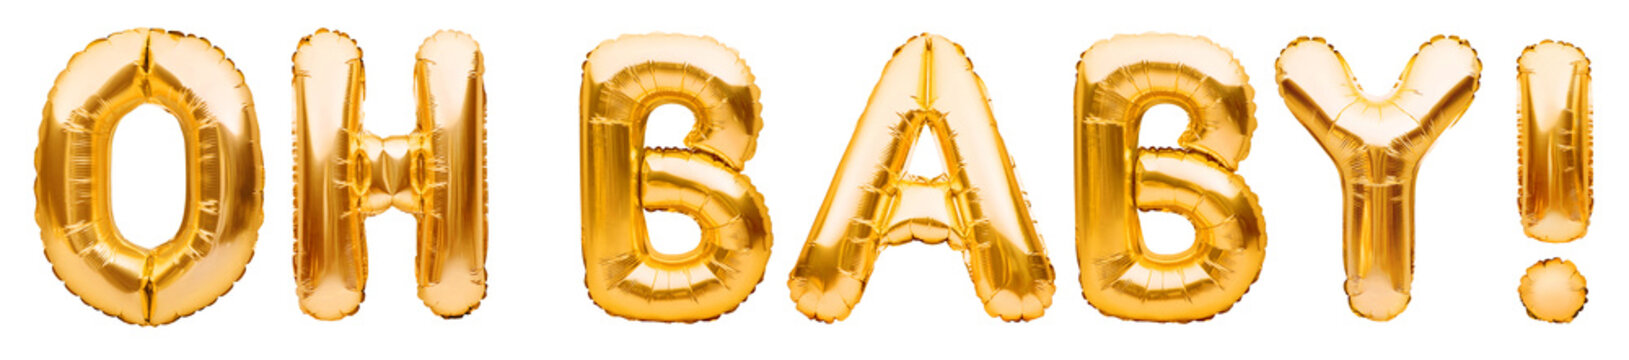 Words OH BABY made of golden inflatable balloons isolated on white background. Helium foil balloons forming text. Baby shower, birthday party celebrating decoration.